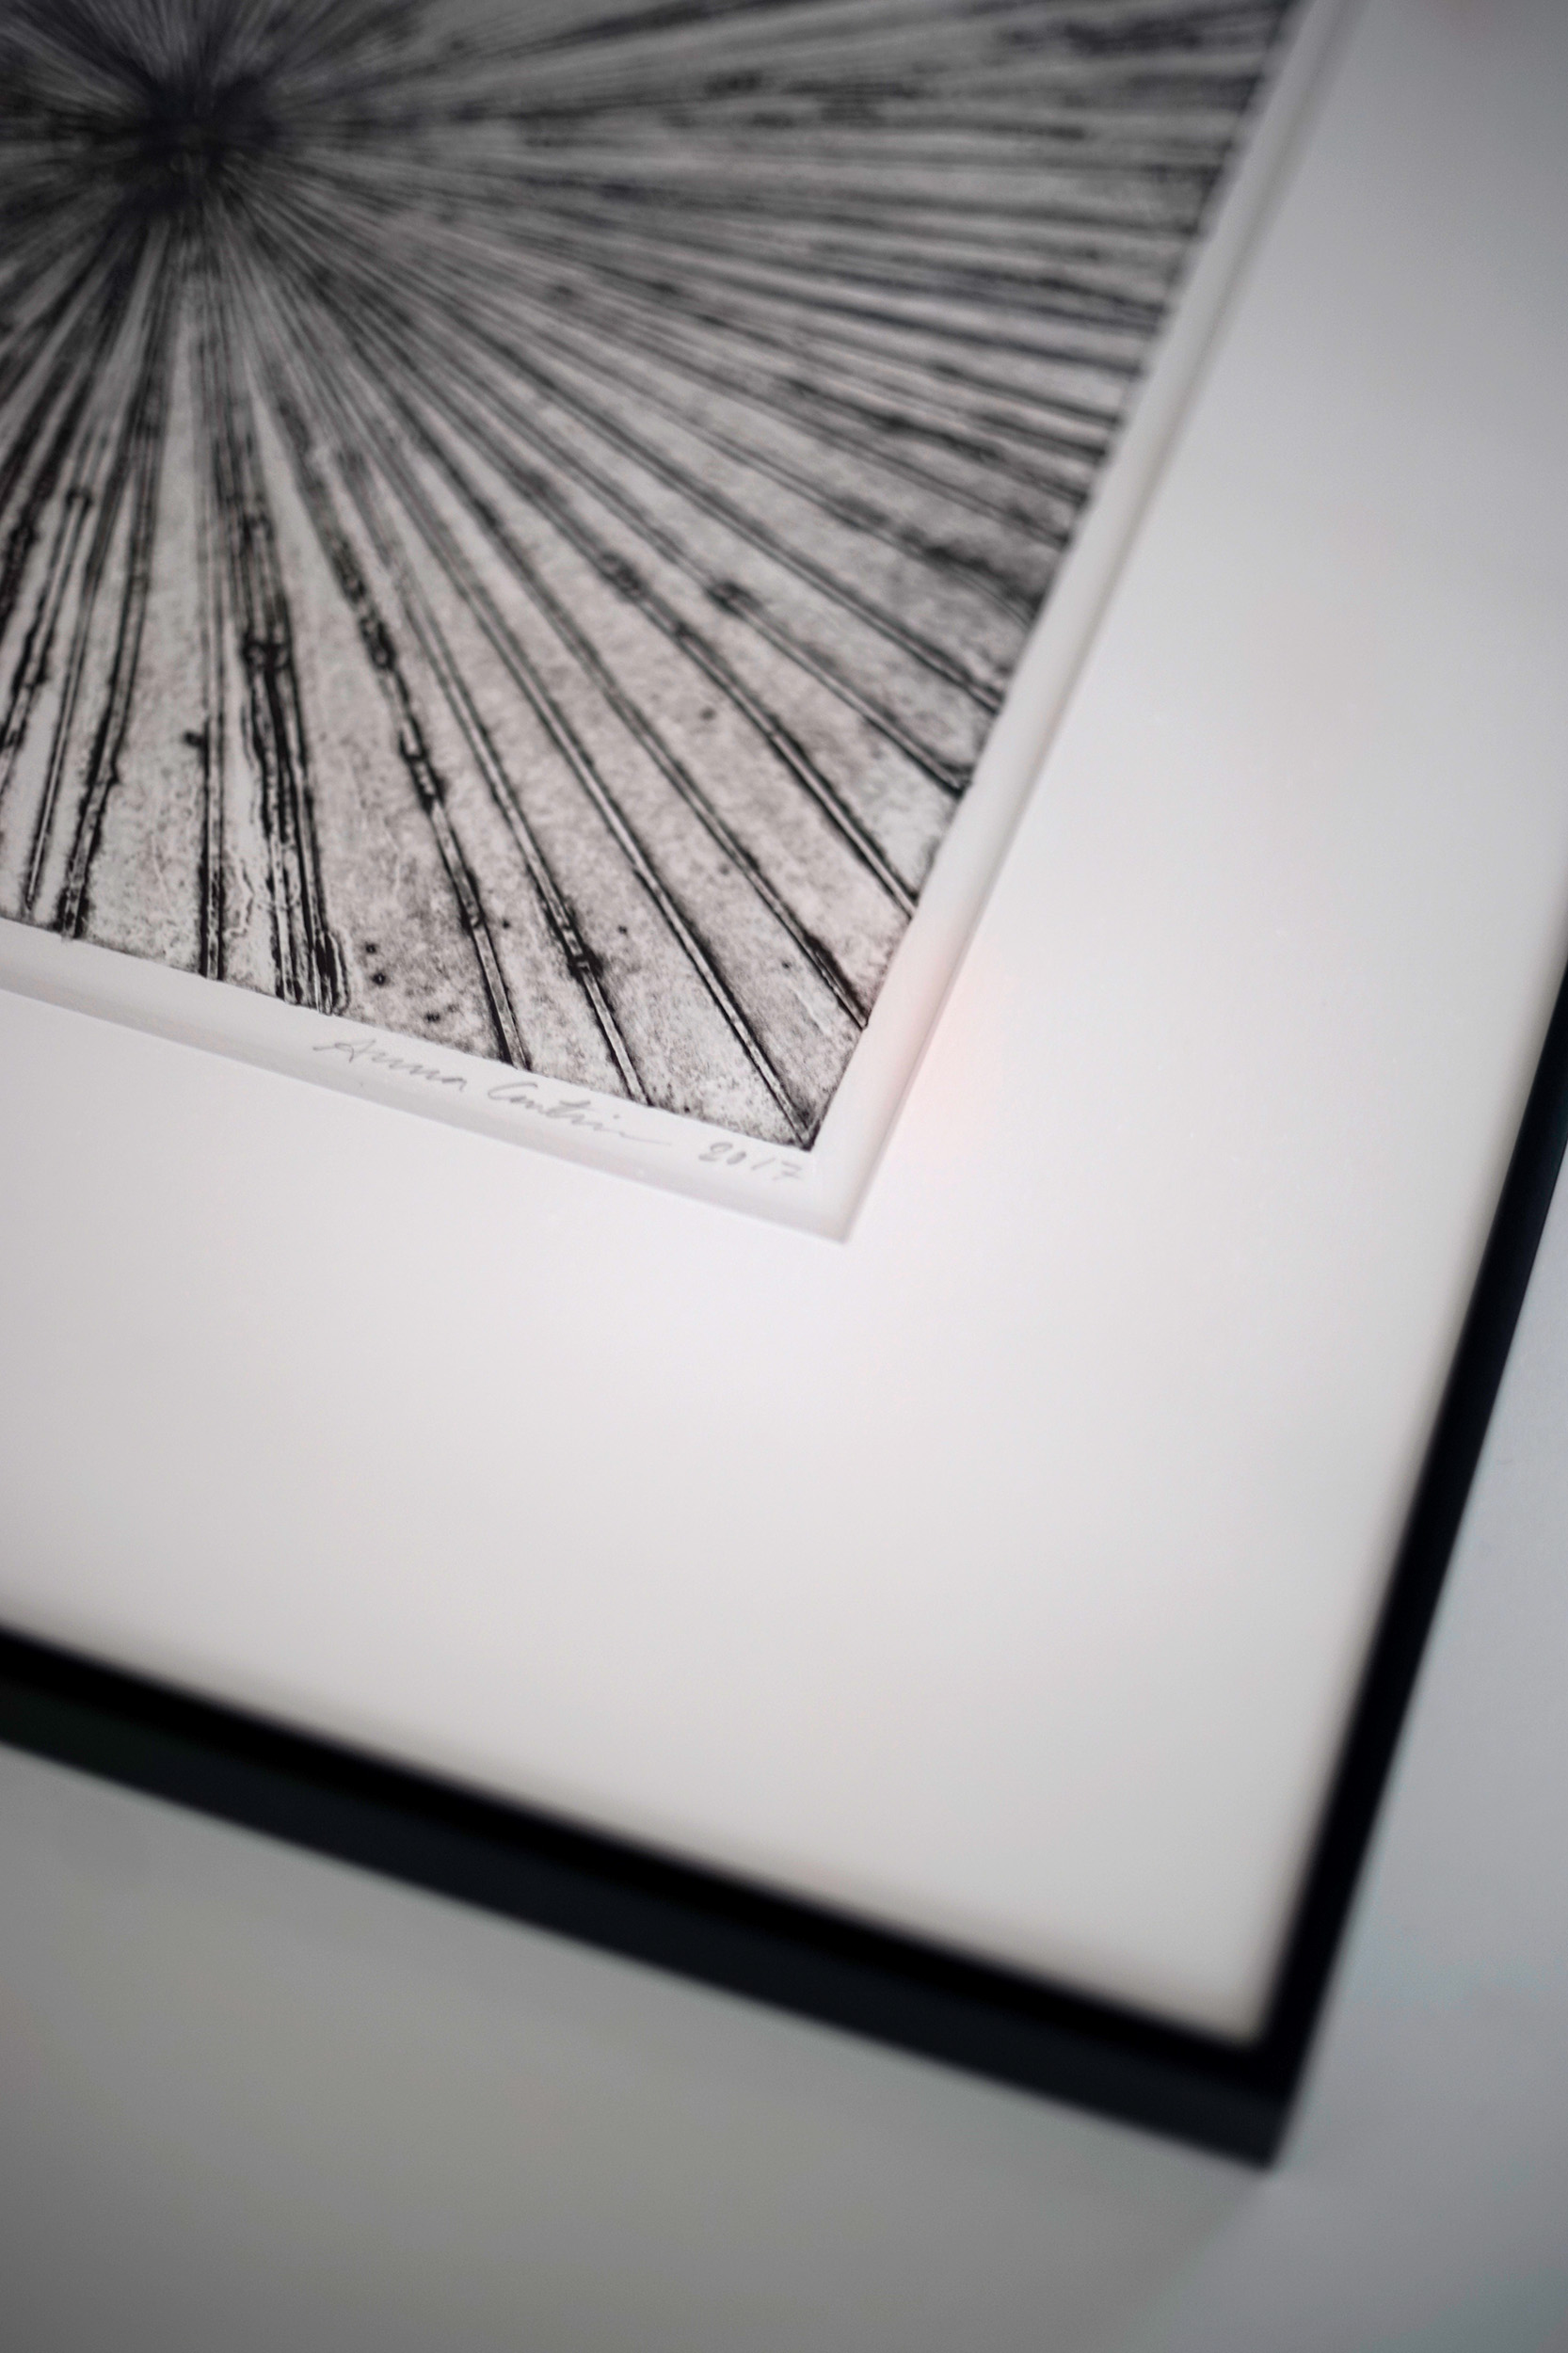 Print framed with white passepartout